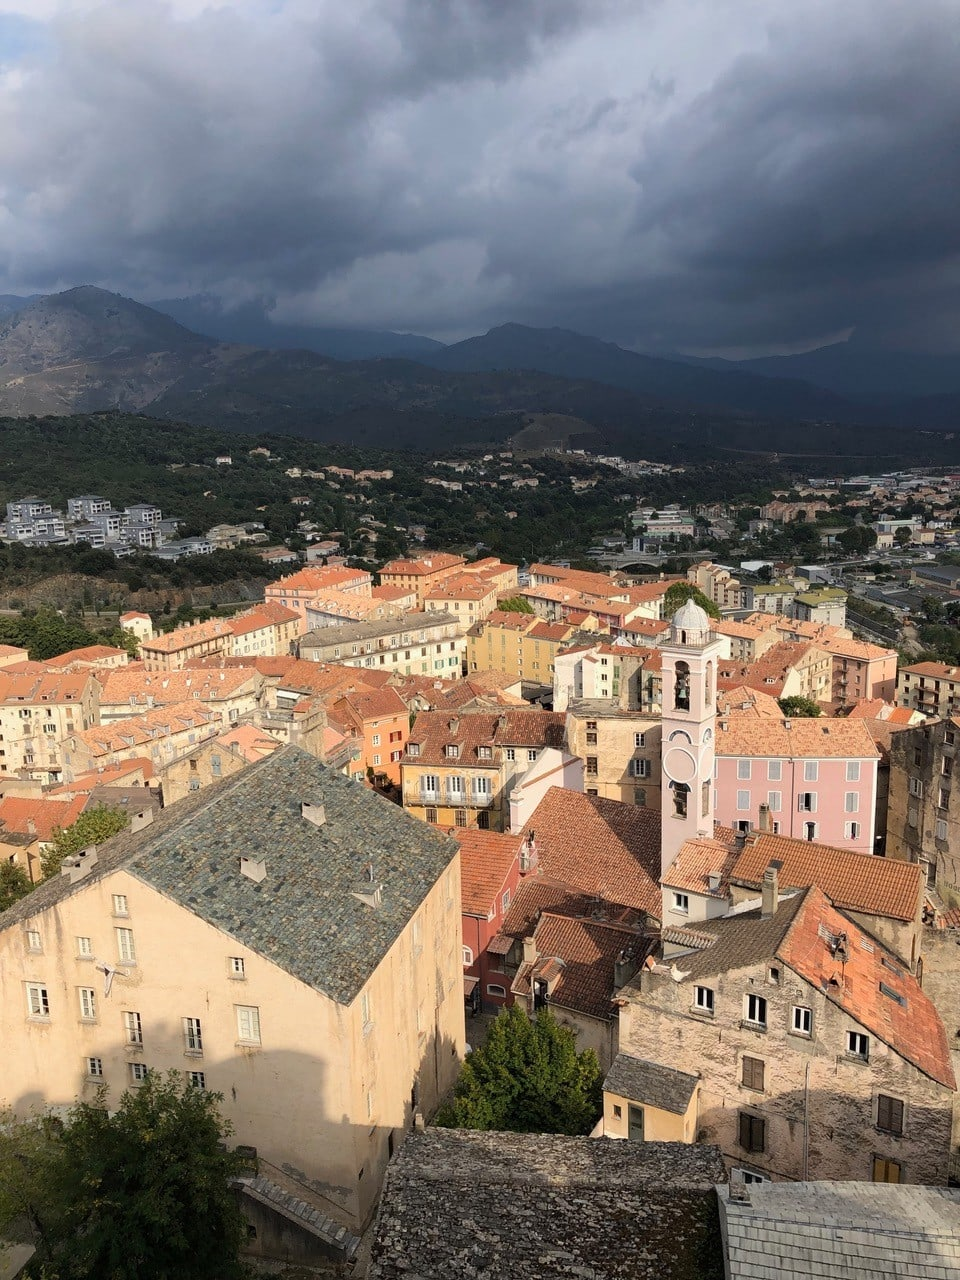 rooftops and mountains in corsica, france